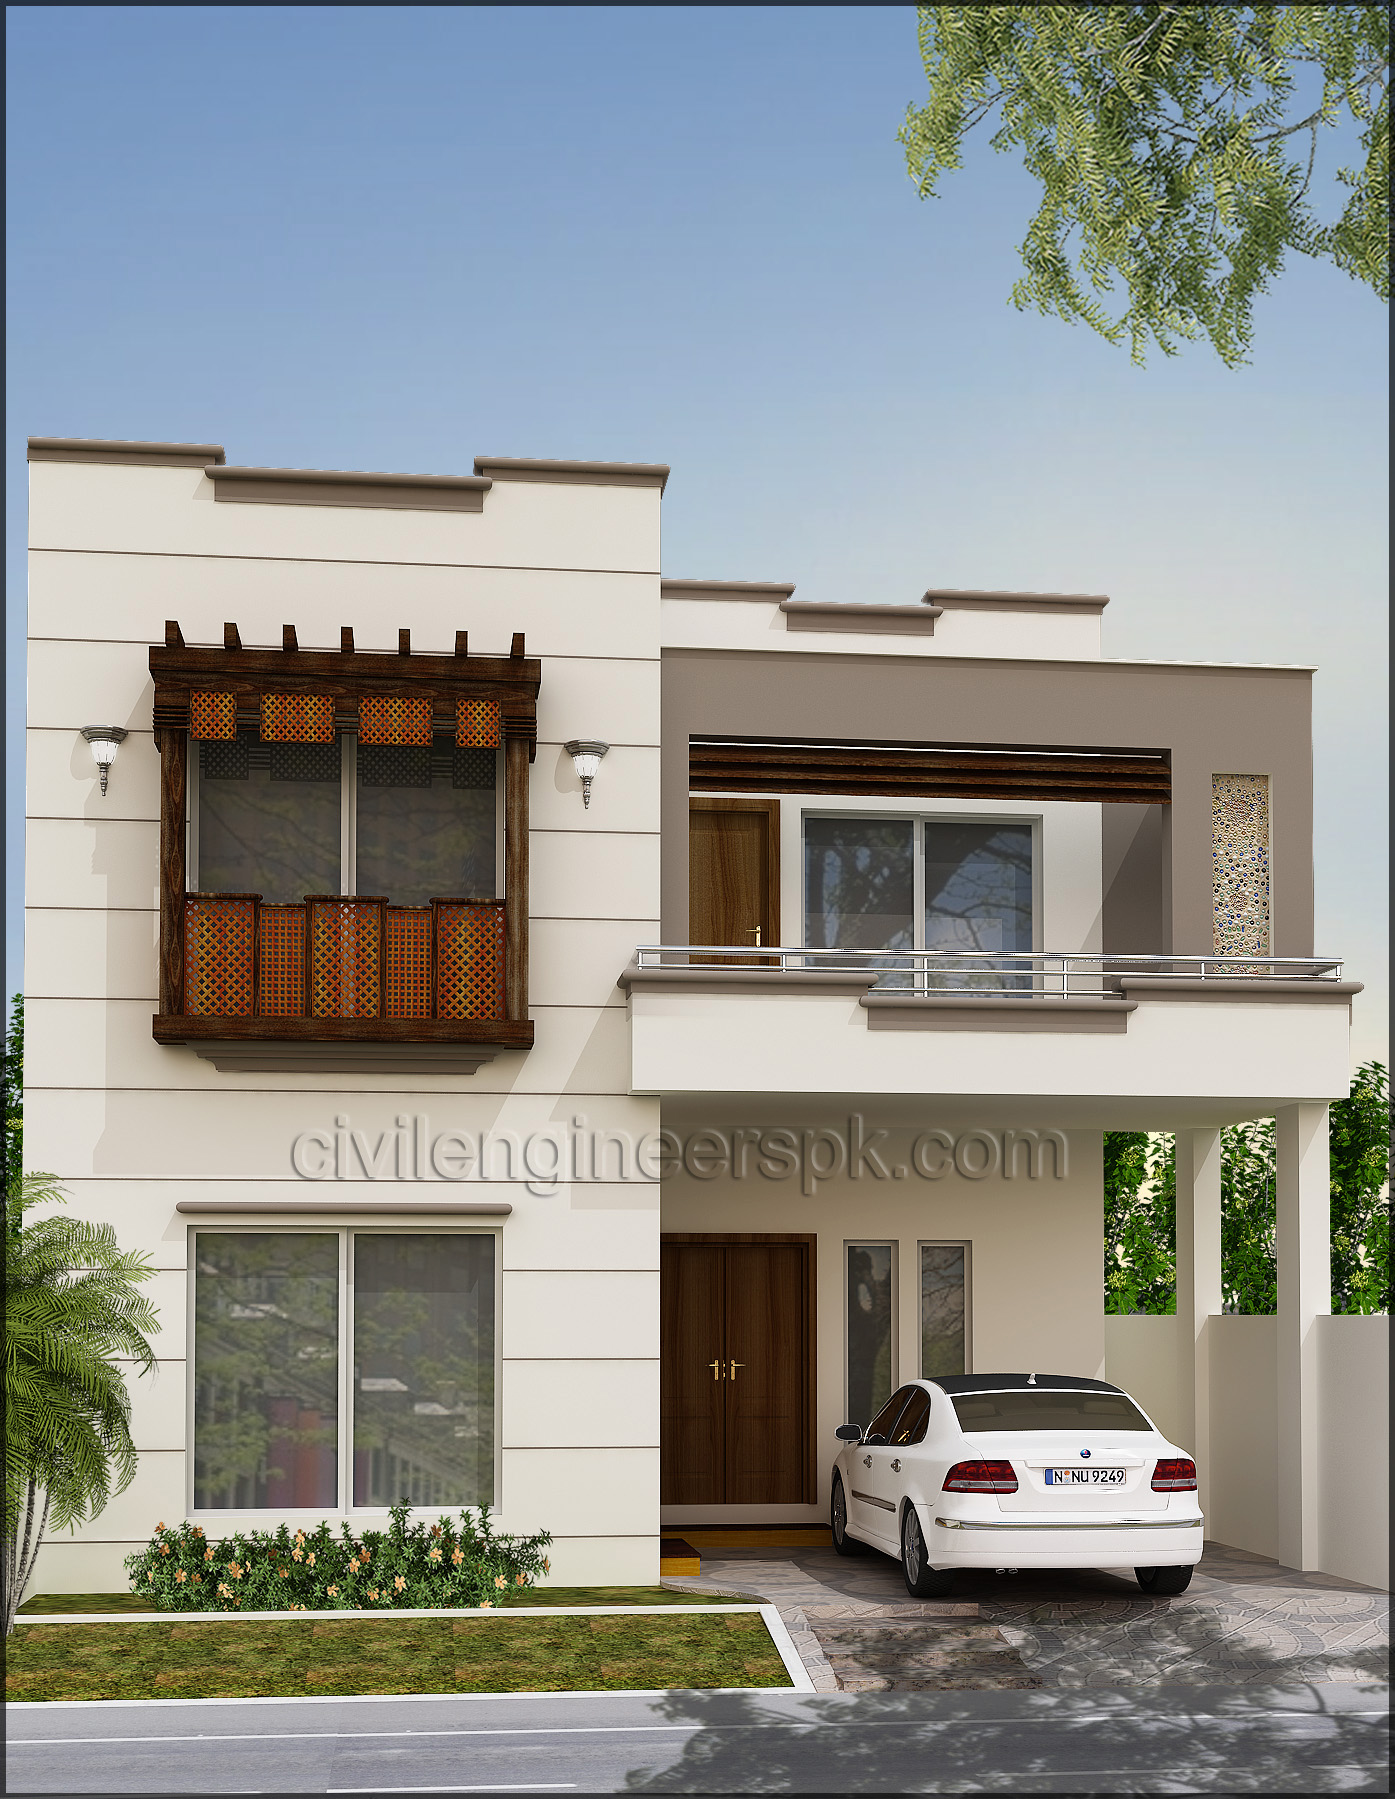 Front Elevation Of 6 Marla Houses : Front views civil engineers pk